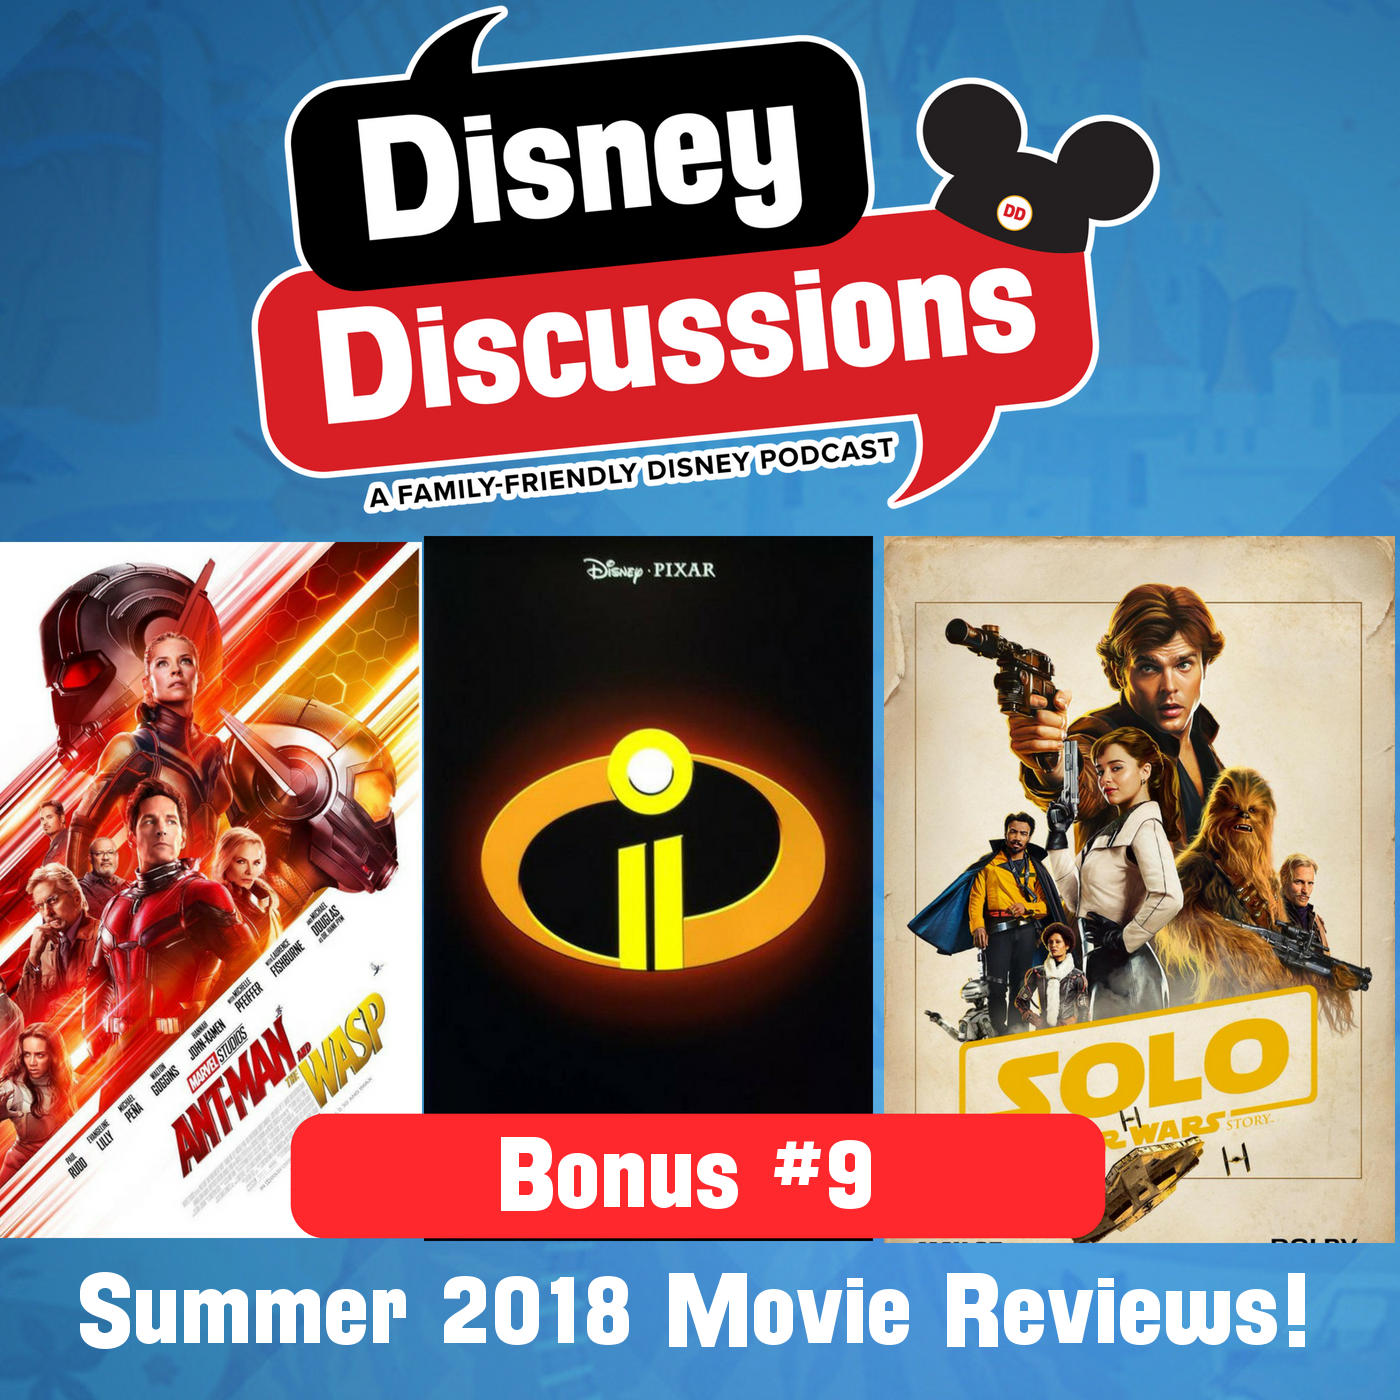 Bonus #9 - Summer 2018 Movie Reviews - Spoilers for Incredibles 2, Ant Man and the Wasp, and Solo: A Star Wars story! - Disney Discussions